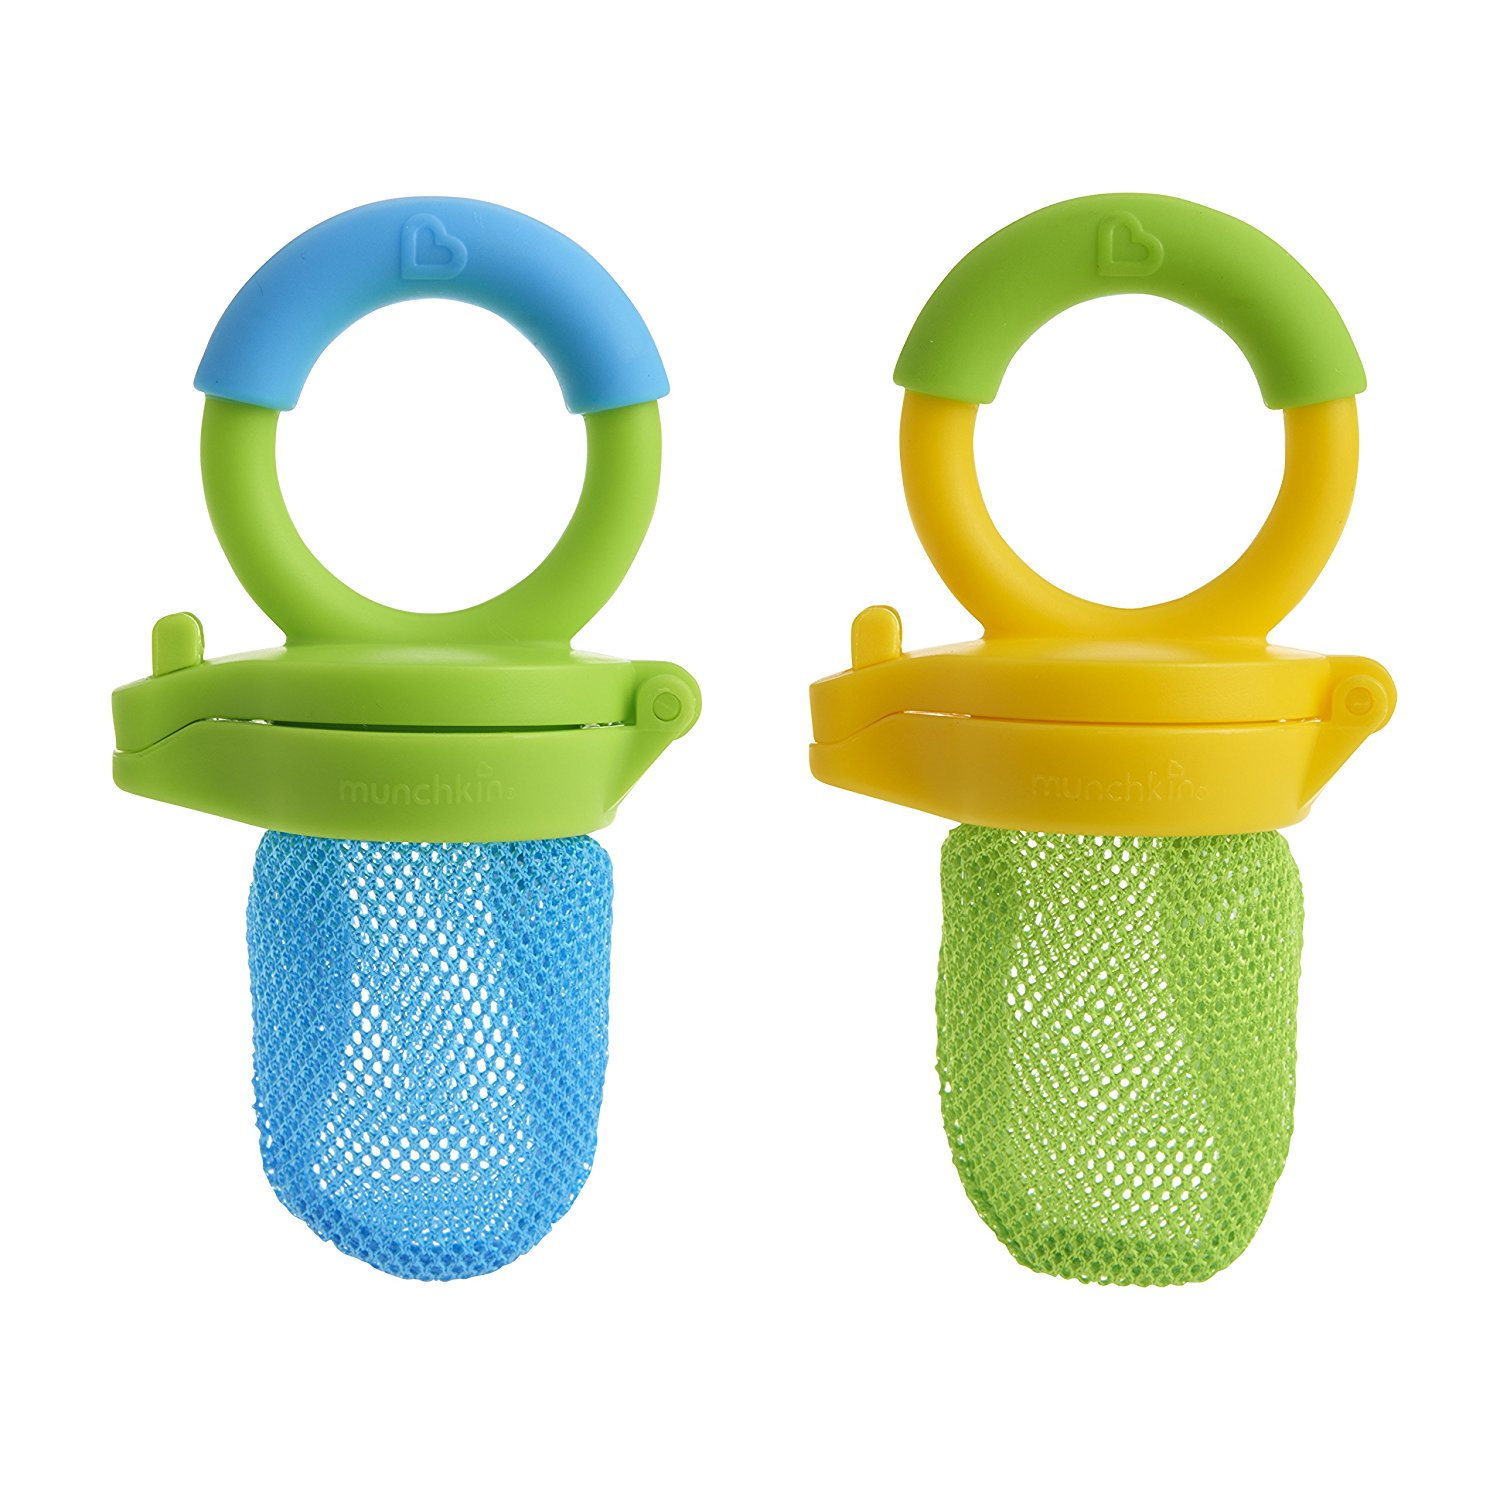 Fresh Food Feeder, 2 Pack, Blue/Green, Feeder helps reduce the risk of choking - only small pieces of digestible food get through By Munchkin